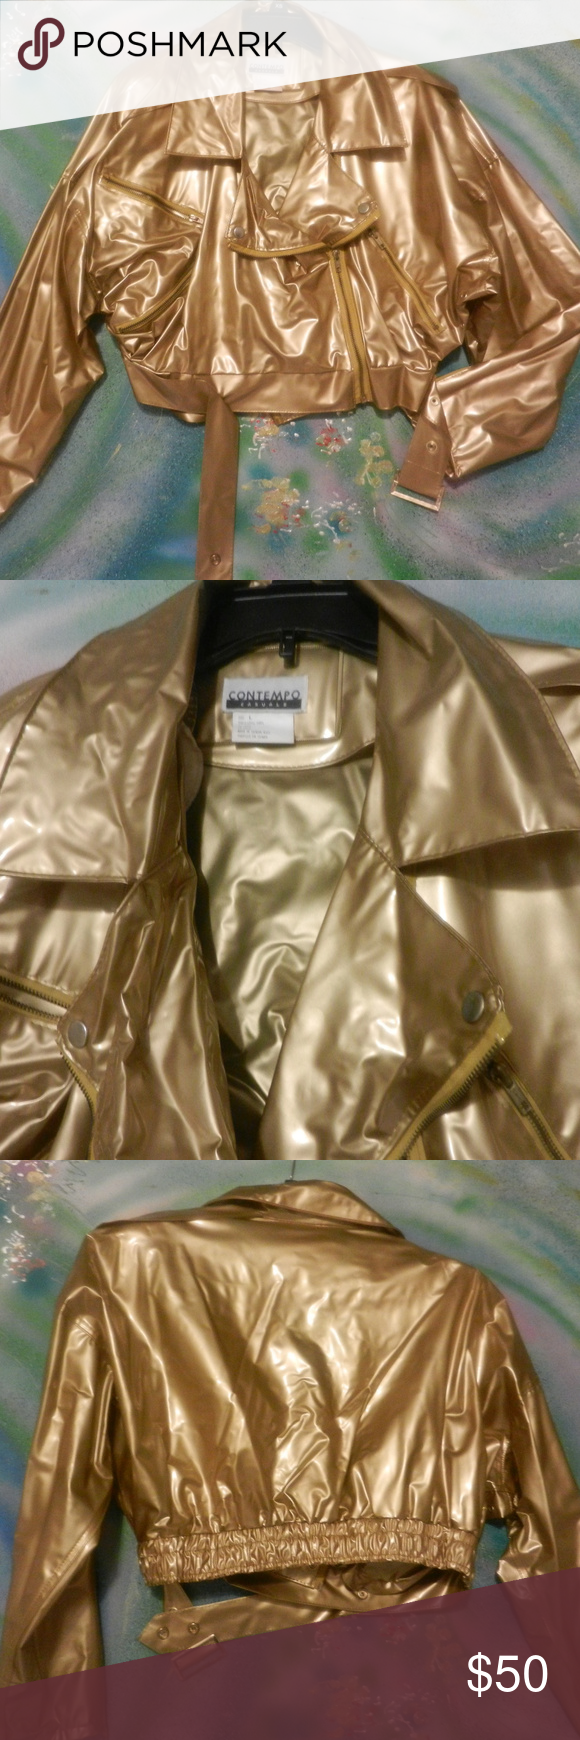 Contempo Casuals Vtg Gold Motorcycle Jacket Vinyl In 2020 Clothes Design Jackets For Women Fashion